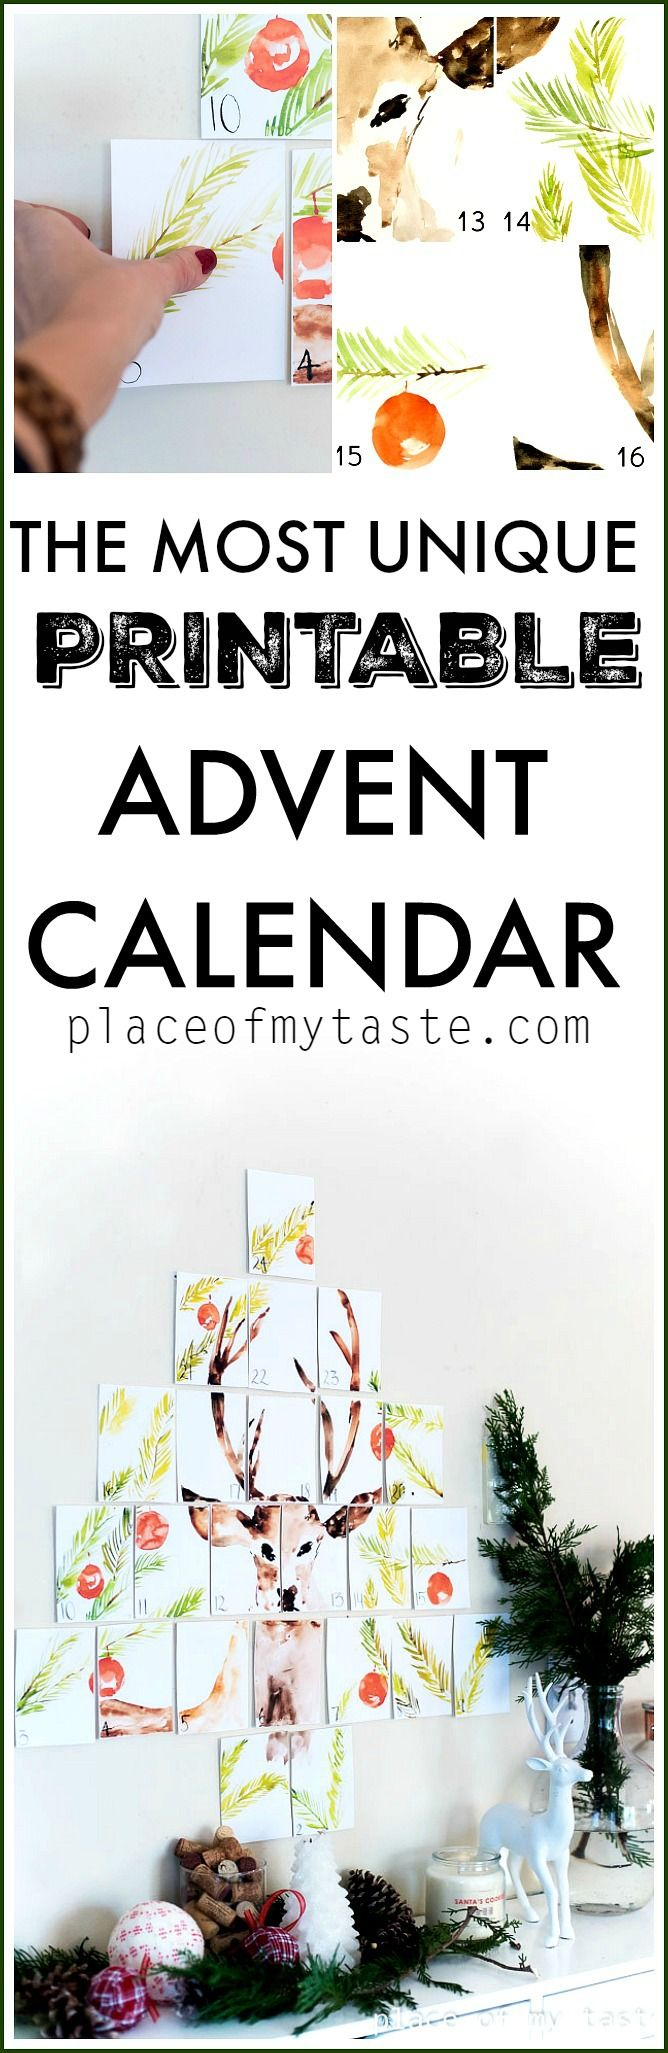 PRINTABLE ADVENT CALENDAR - Place Of My Taste